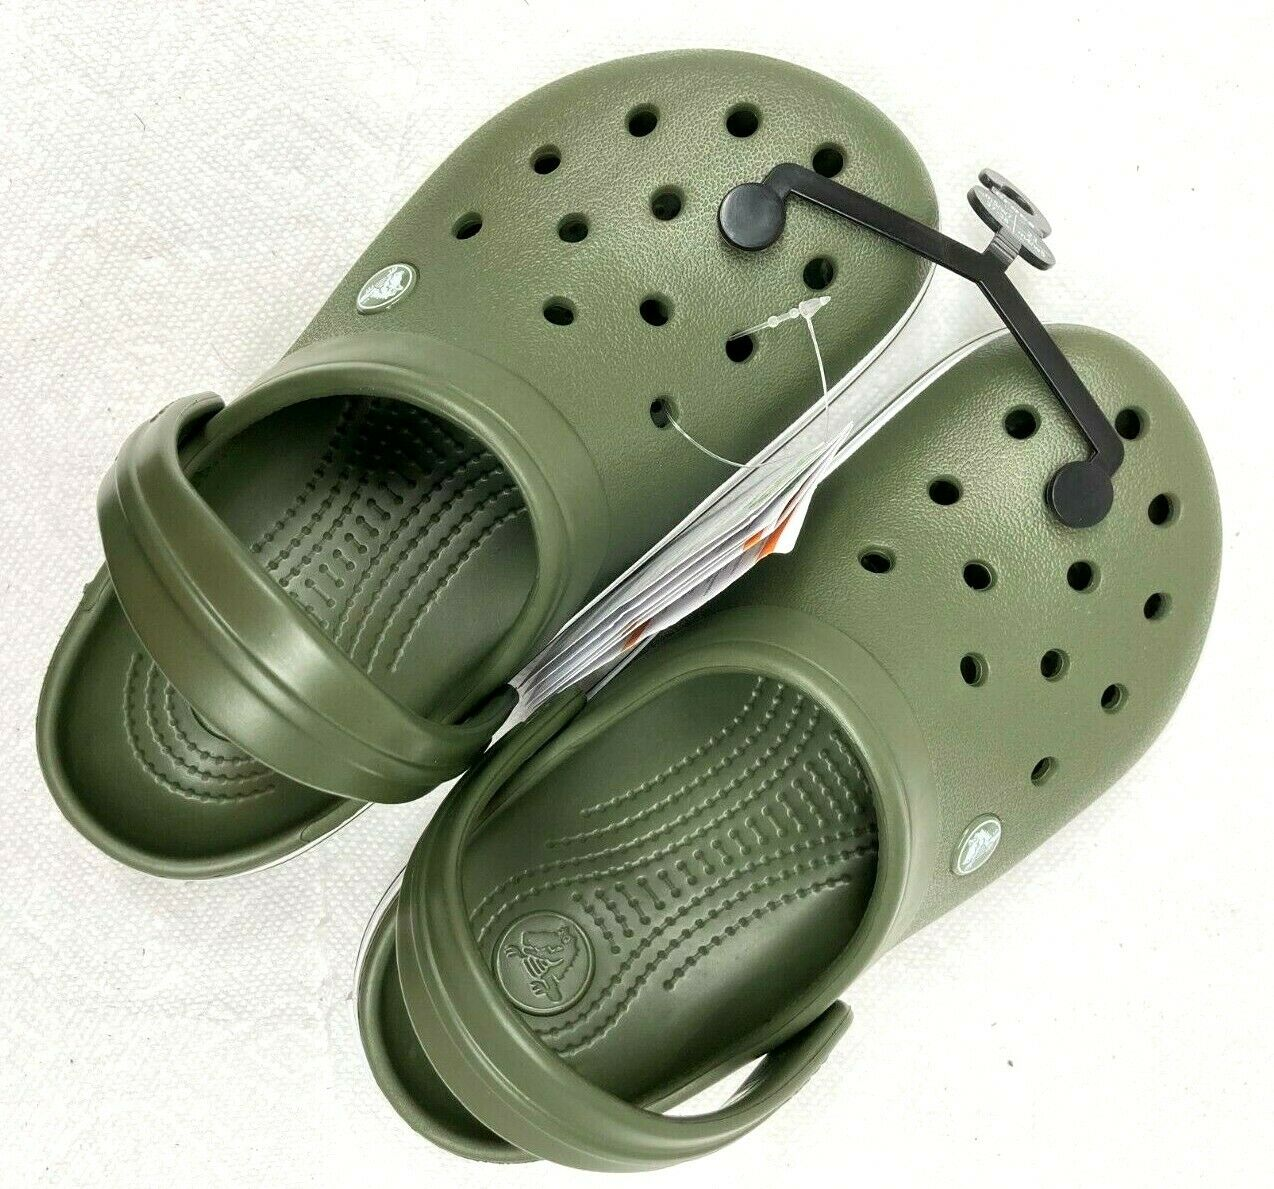 Crocs Crocband Clog/Slip on Casual Water shoes Army Green/Wh